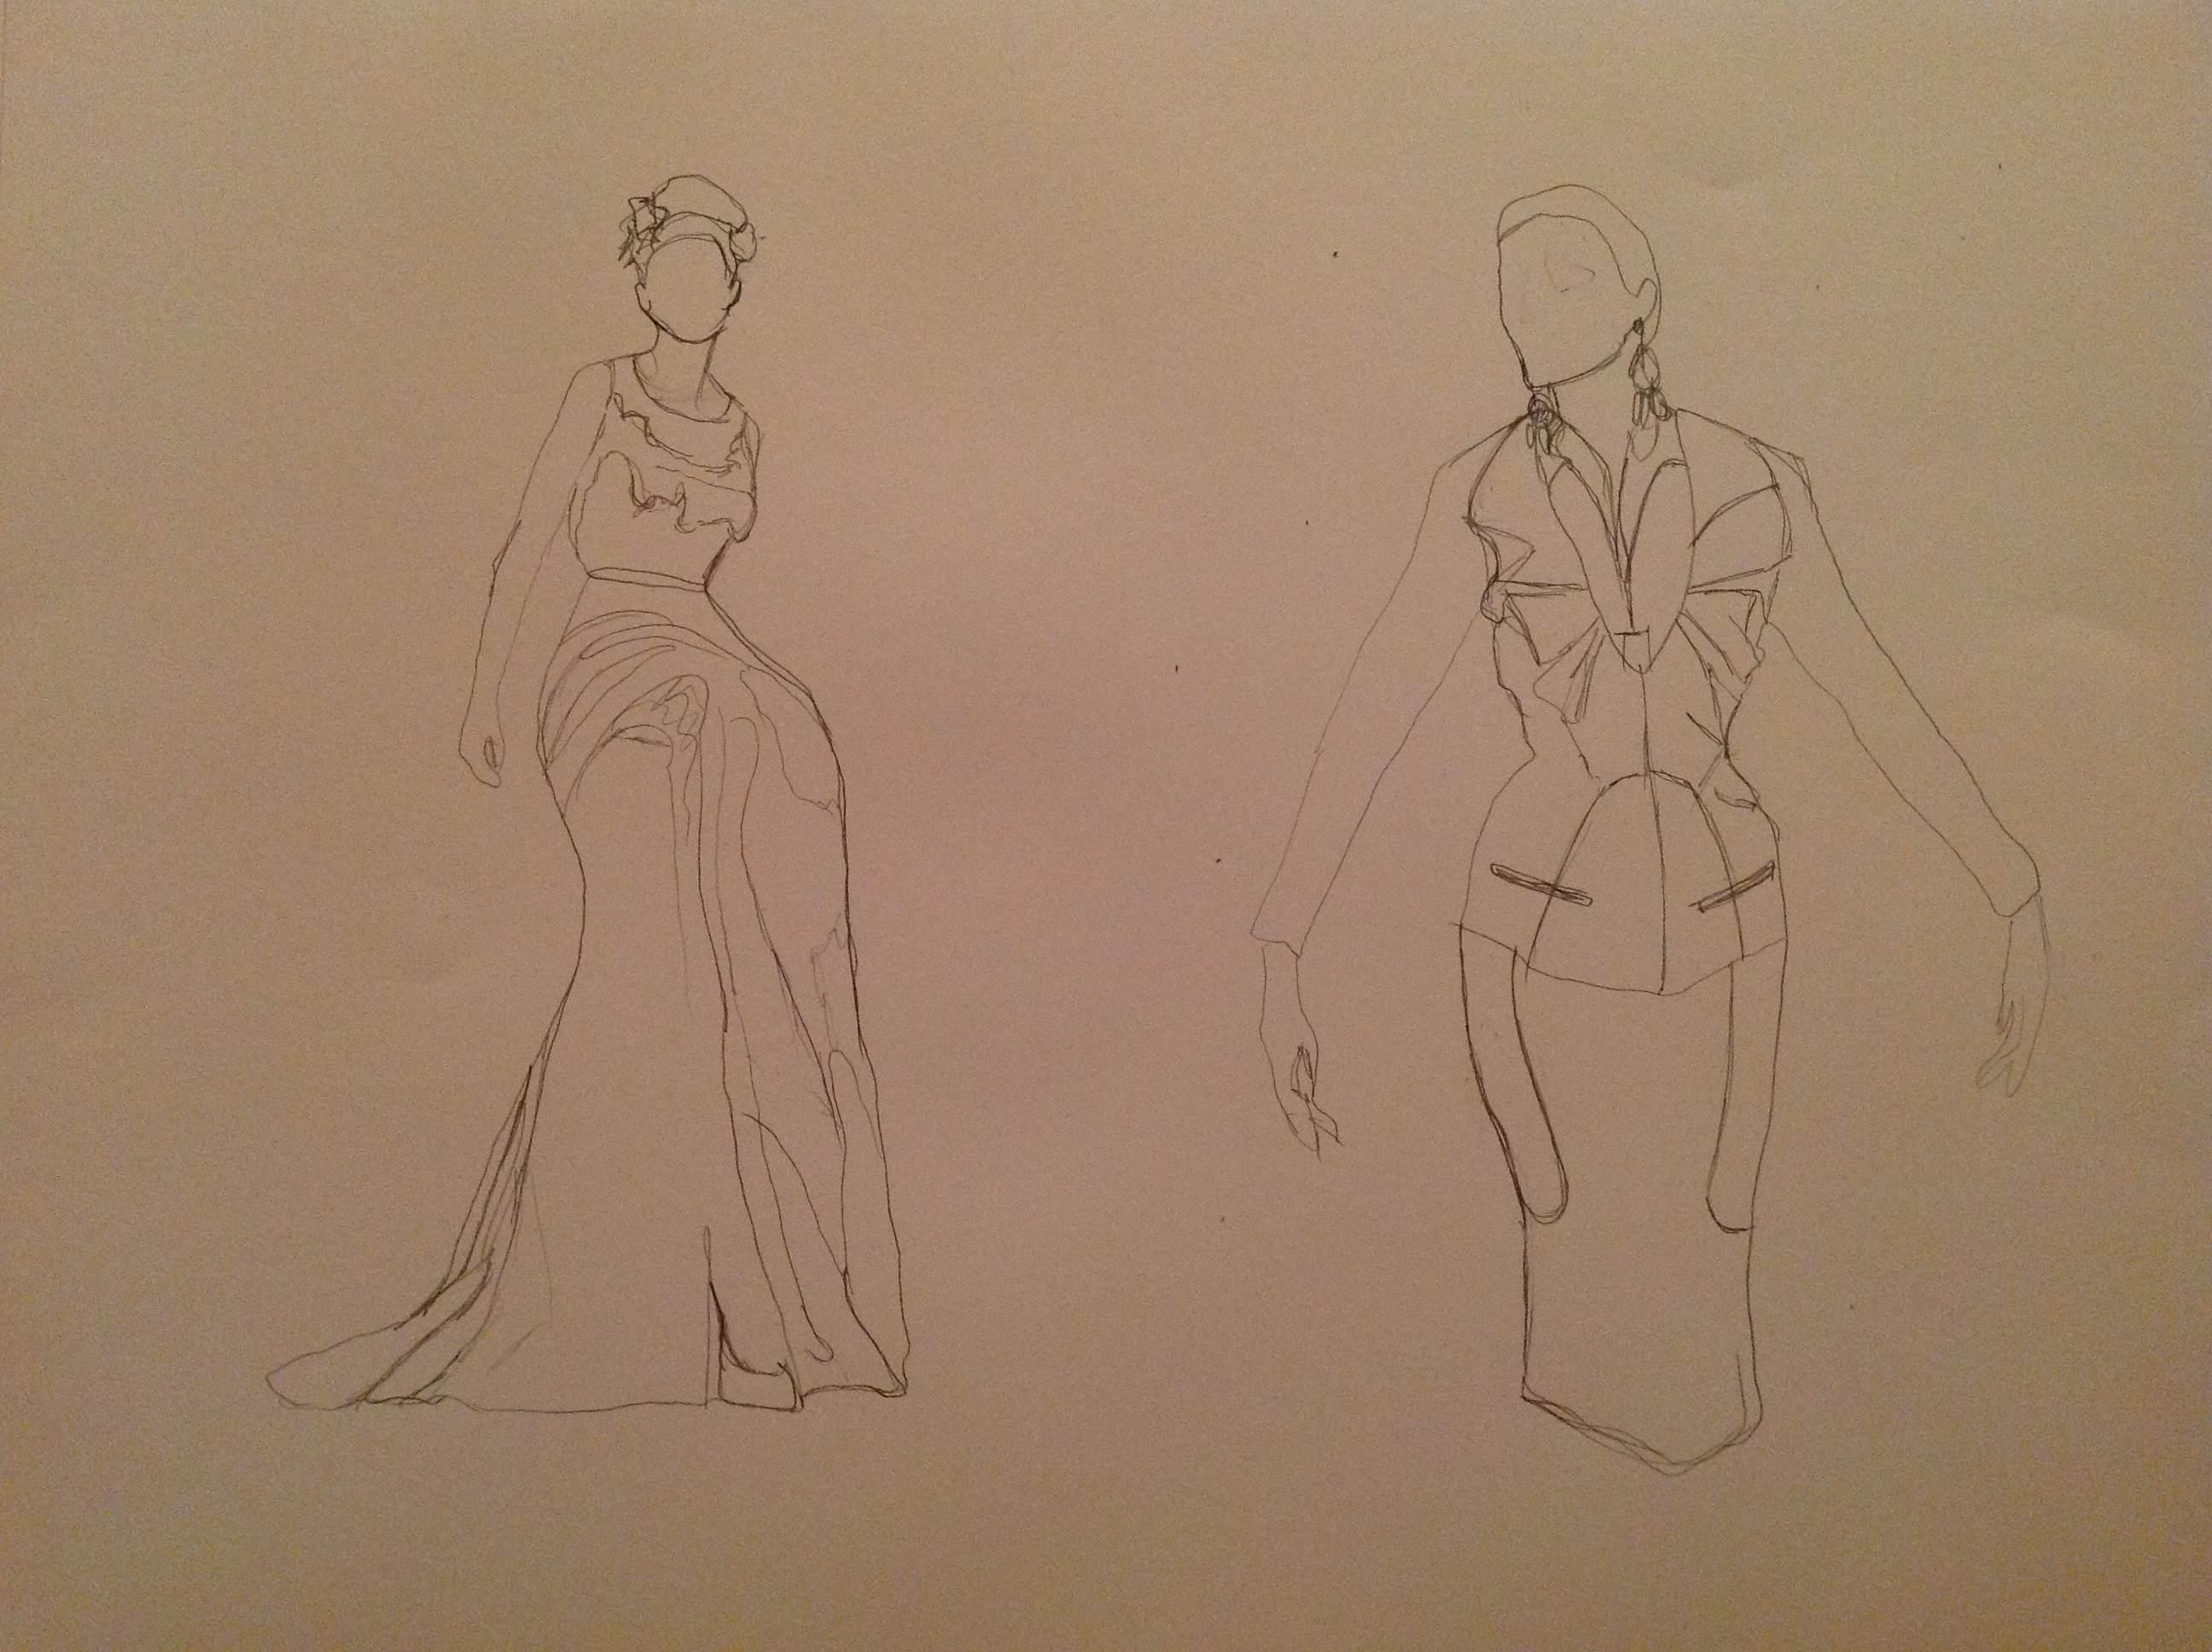 inspiration - image 3 - student project